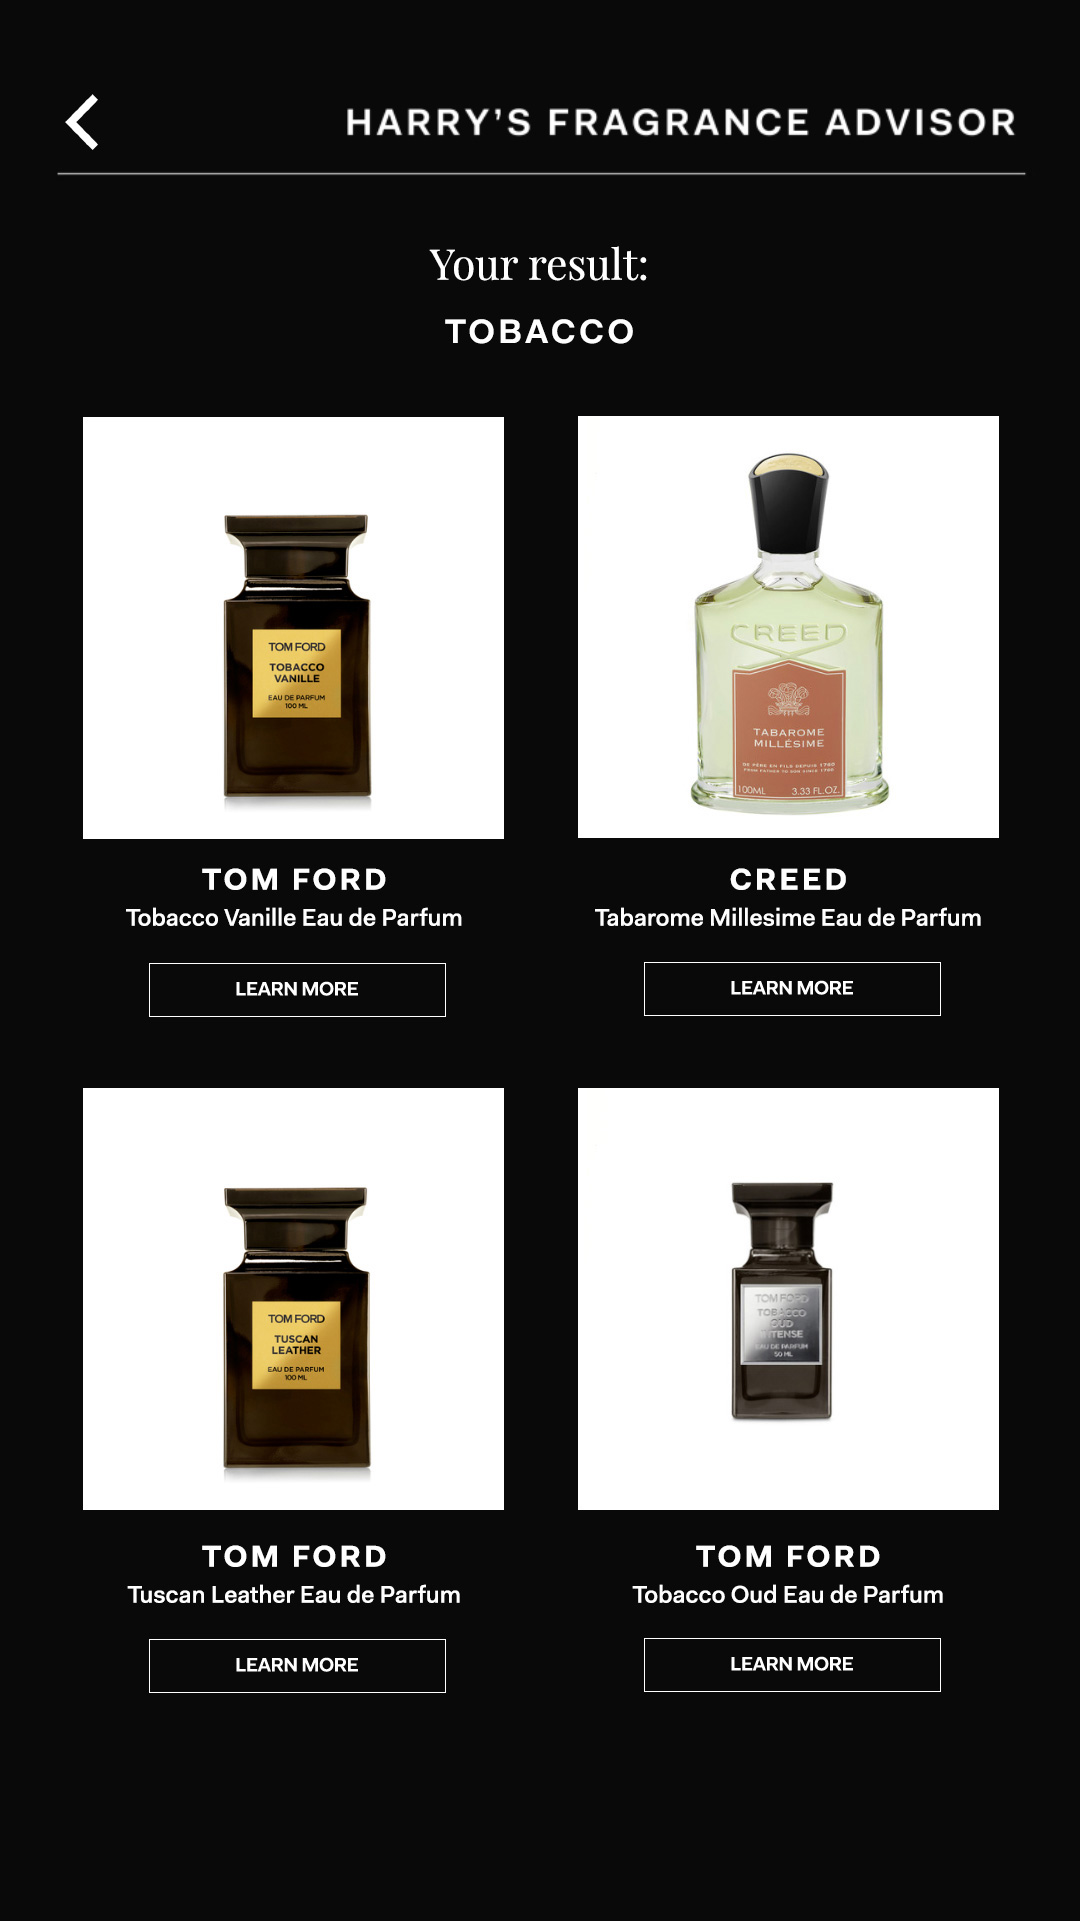 harrys-fragrance-advisor-tobacco